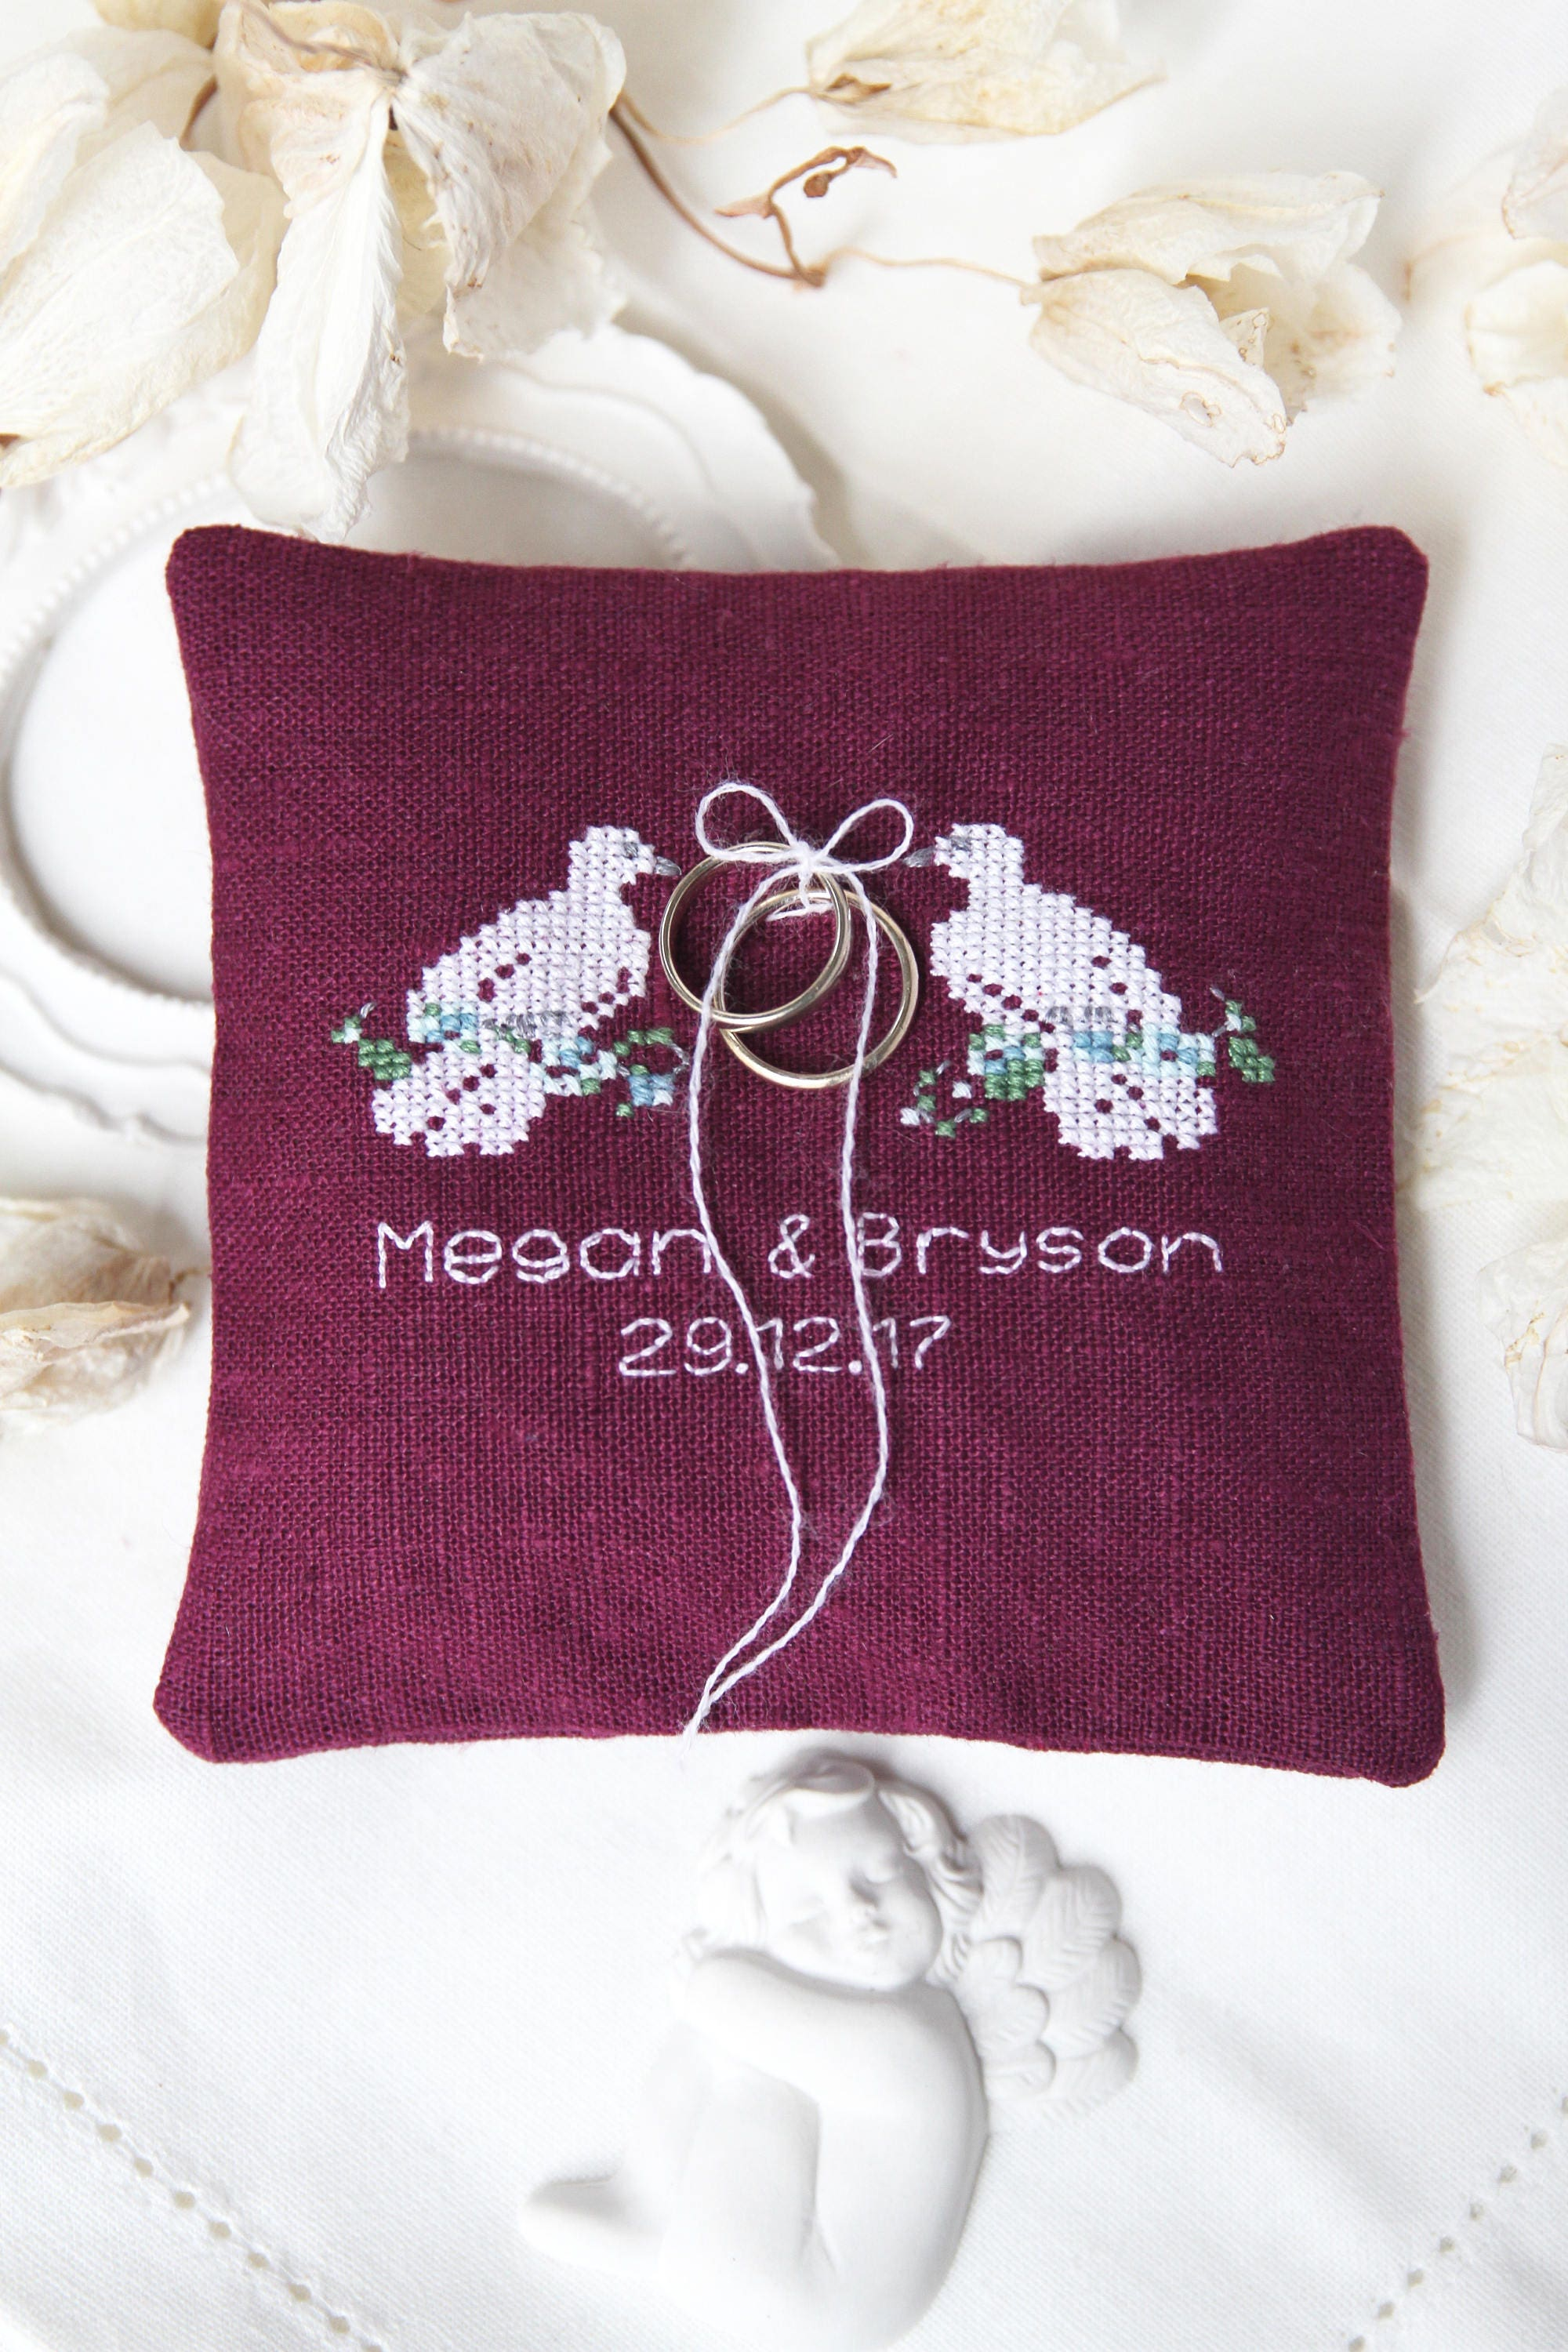 embroidered wedding rings pillow with doves rings cushion